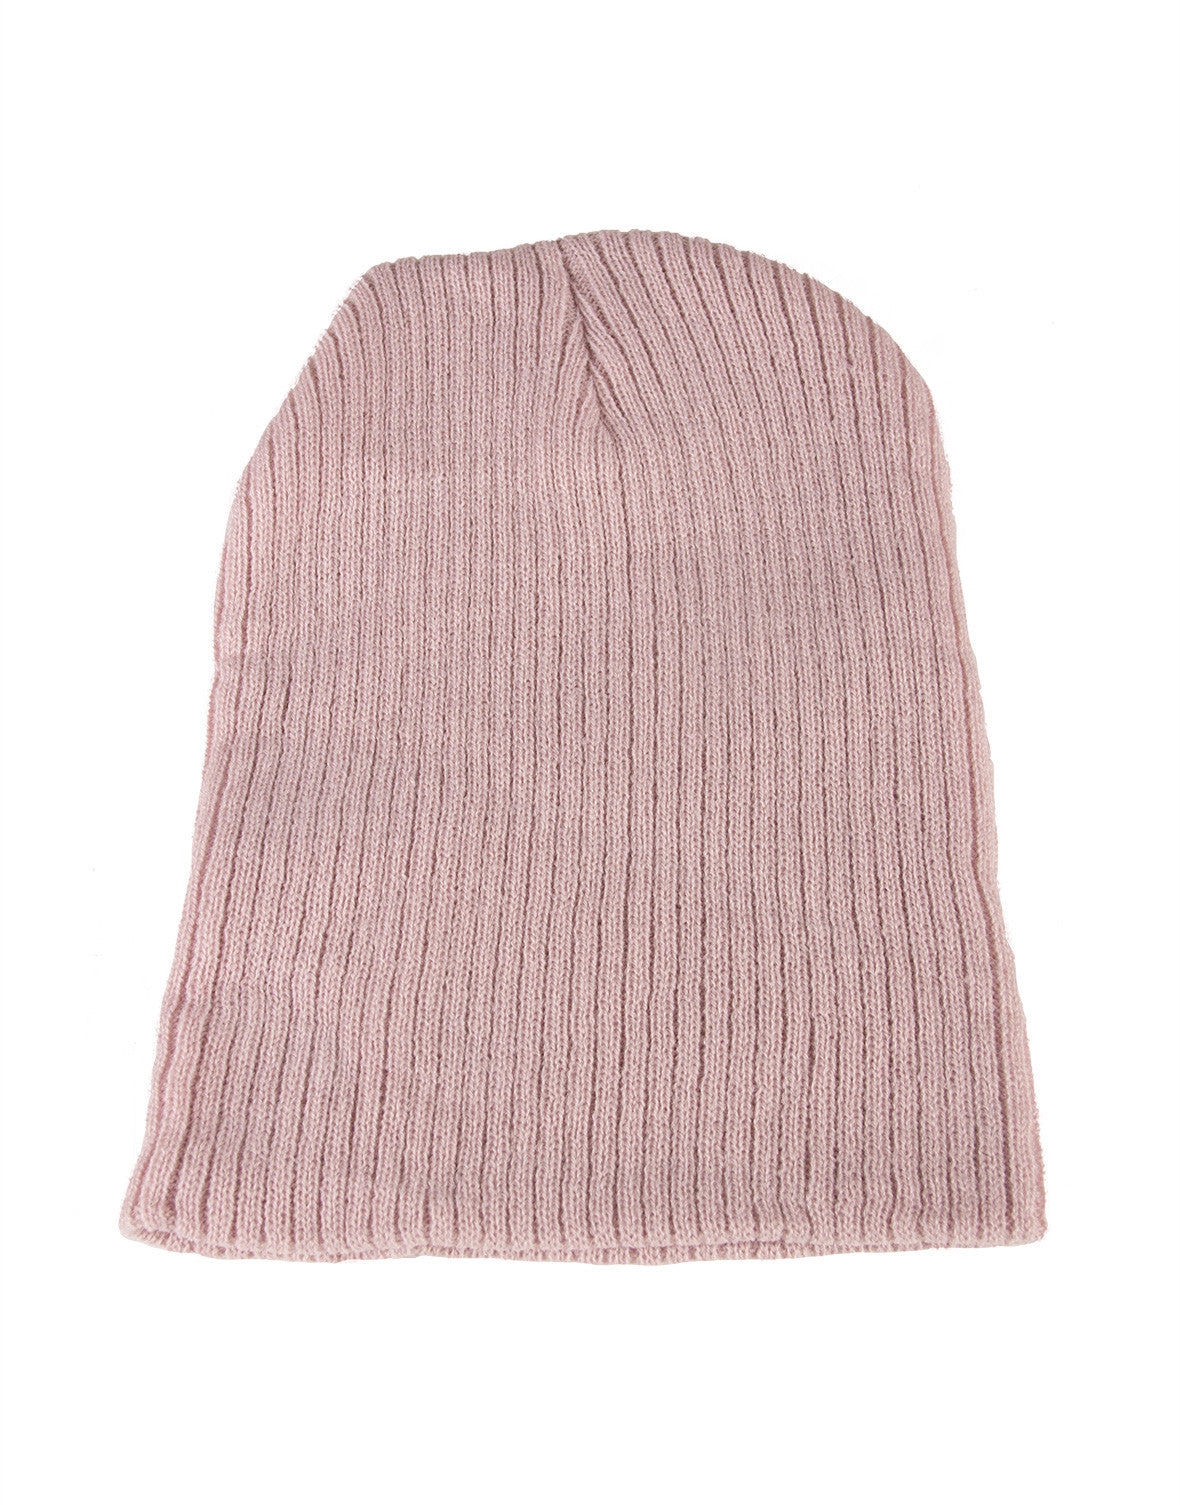 Ribbed Beanie - Pink